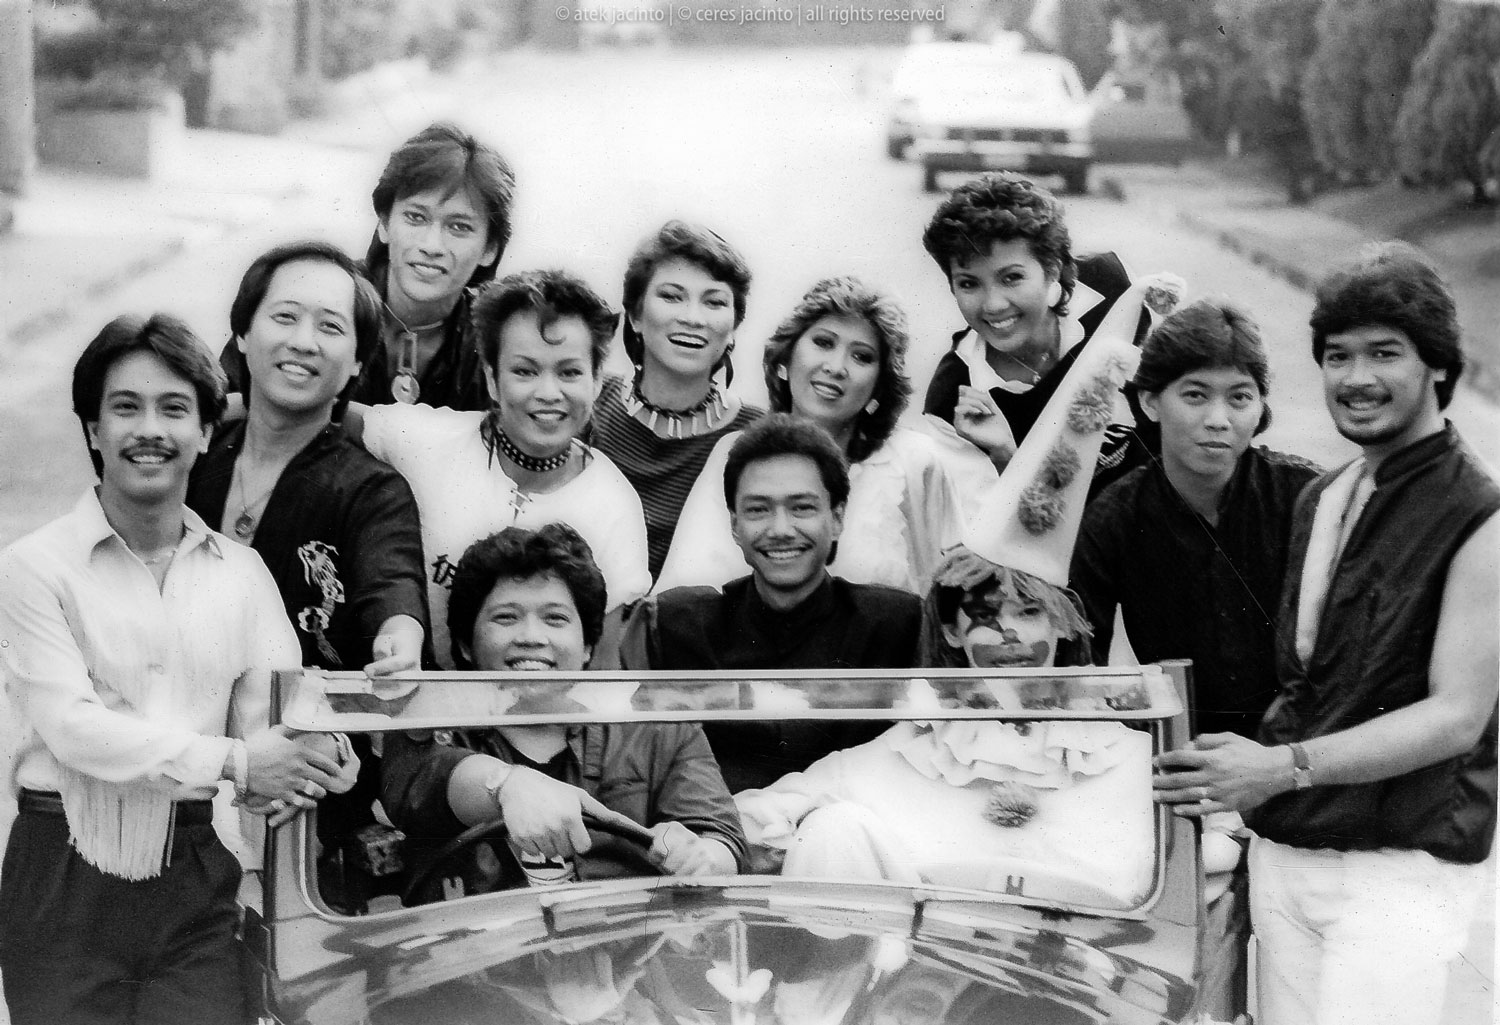 The Circus Band. Front Row: Hajji Alejandro, Paco Gamboa (bass guitar)+, Rudy Lozano (lead guitar)+, Clown mascot in place of Pabs Dadivas who had not arrived yet from the U.S., Boy Katindig (multi-digital keyboards), Walter Calinawan (drums)+  Second Row: Gerry Paraiso (piano)+, Ceres Jacinto, Basil Valdez, Jacqui Magno, Tillie Moreno, Pat Castillo (Photo by Jaime Zobel)